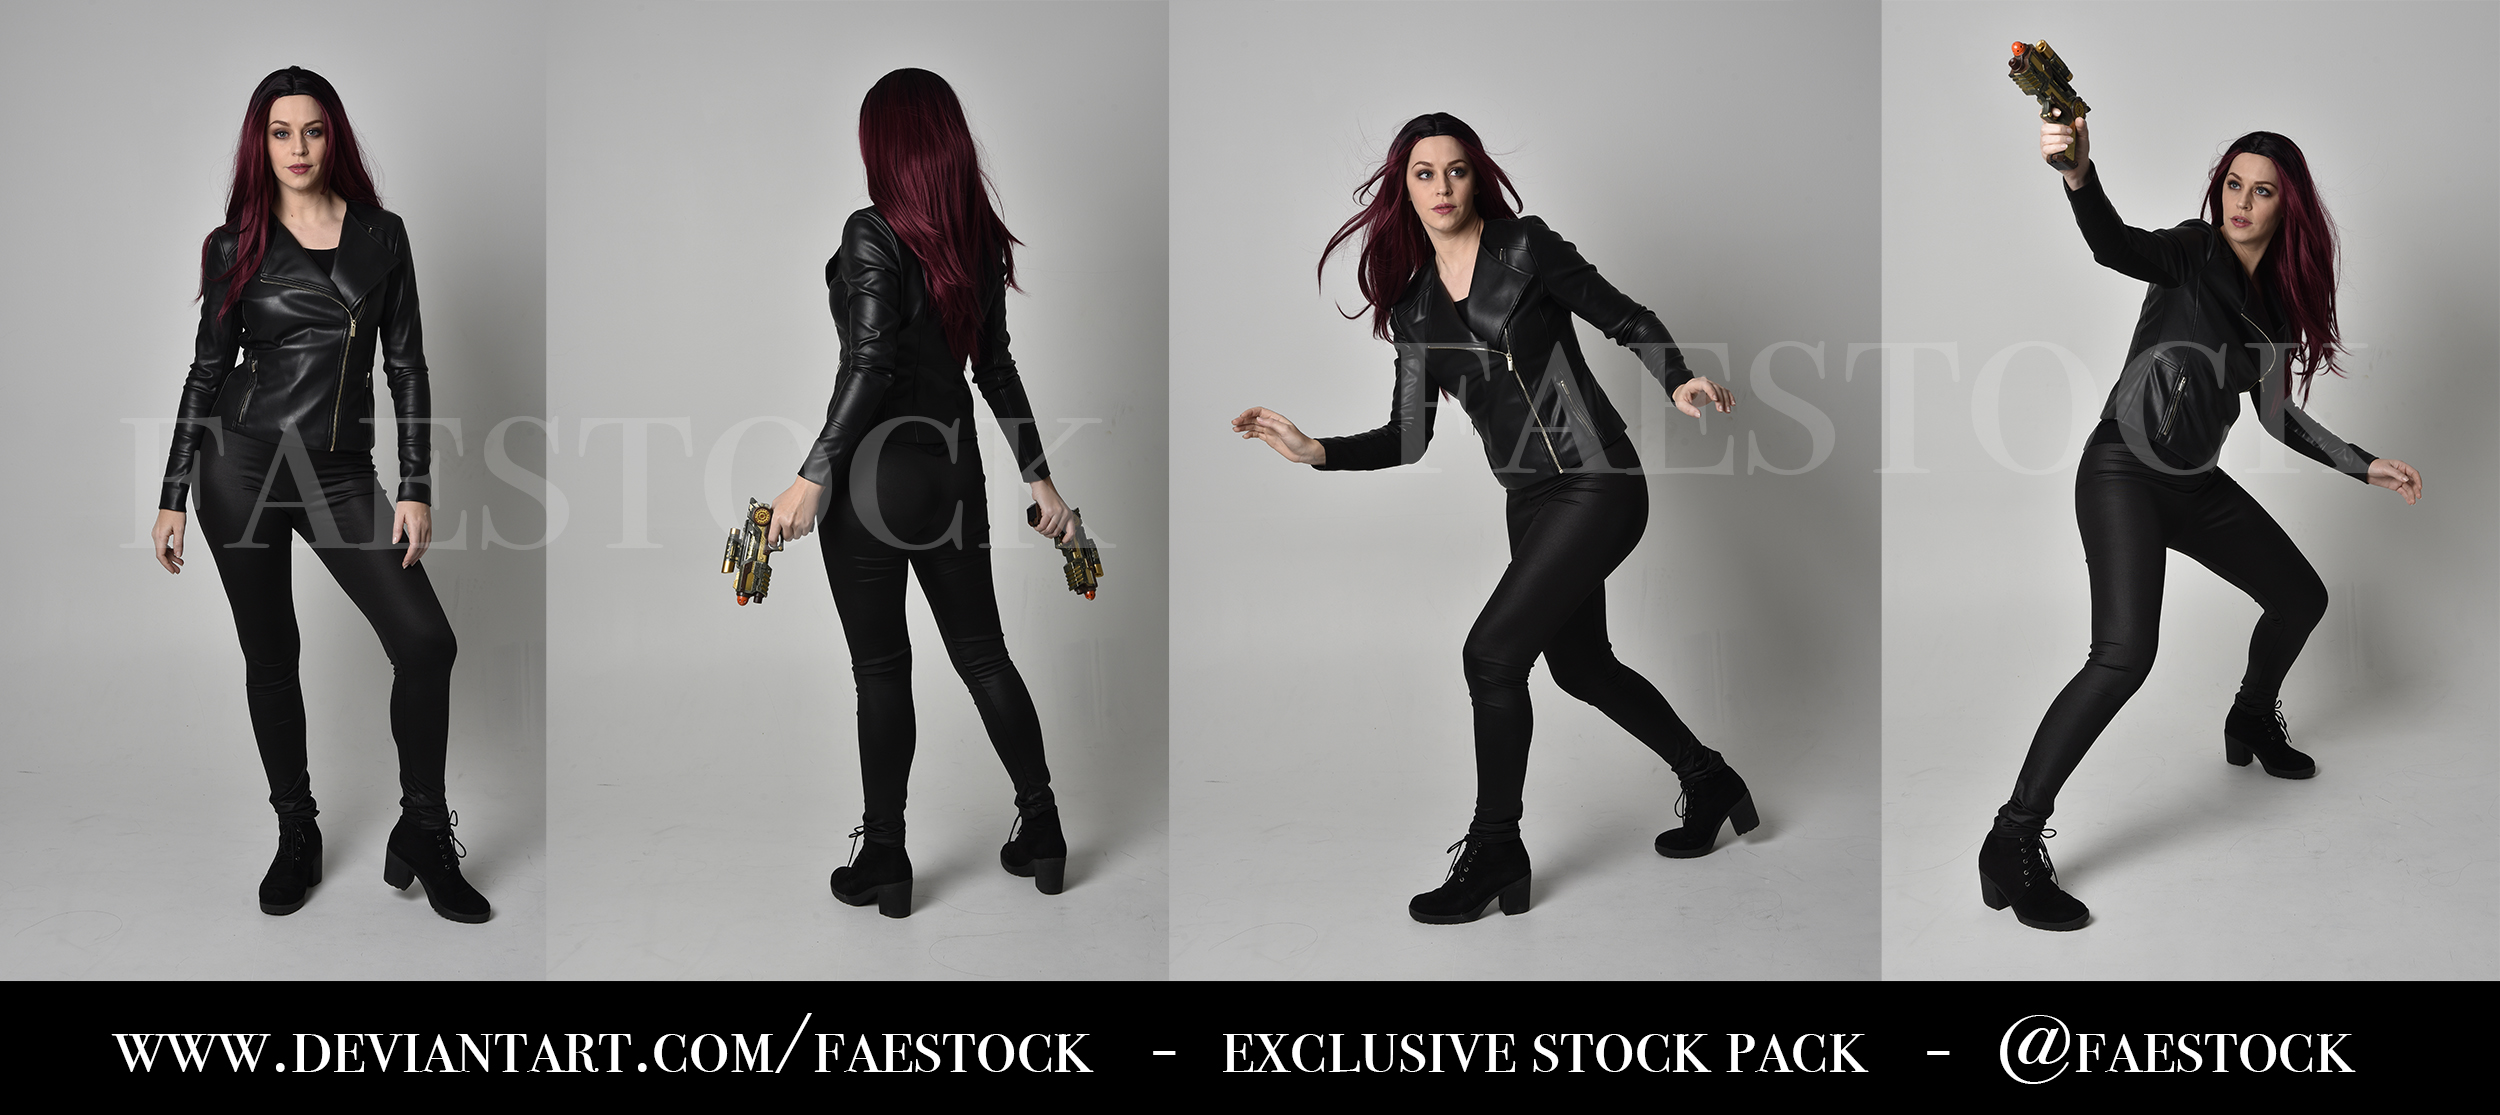 Exclusive Stock Pack - Violet 2